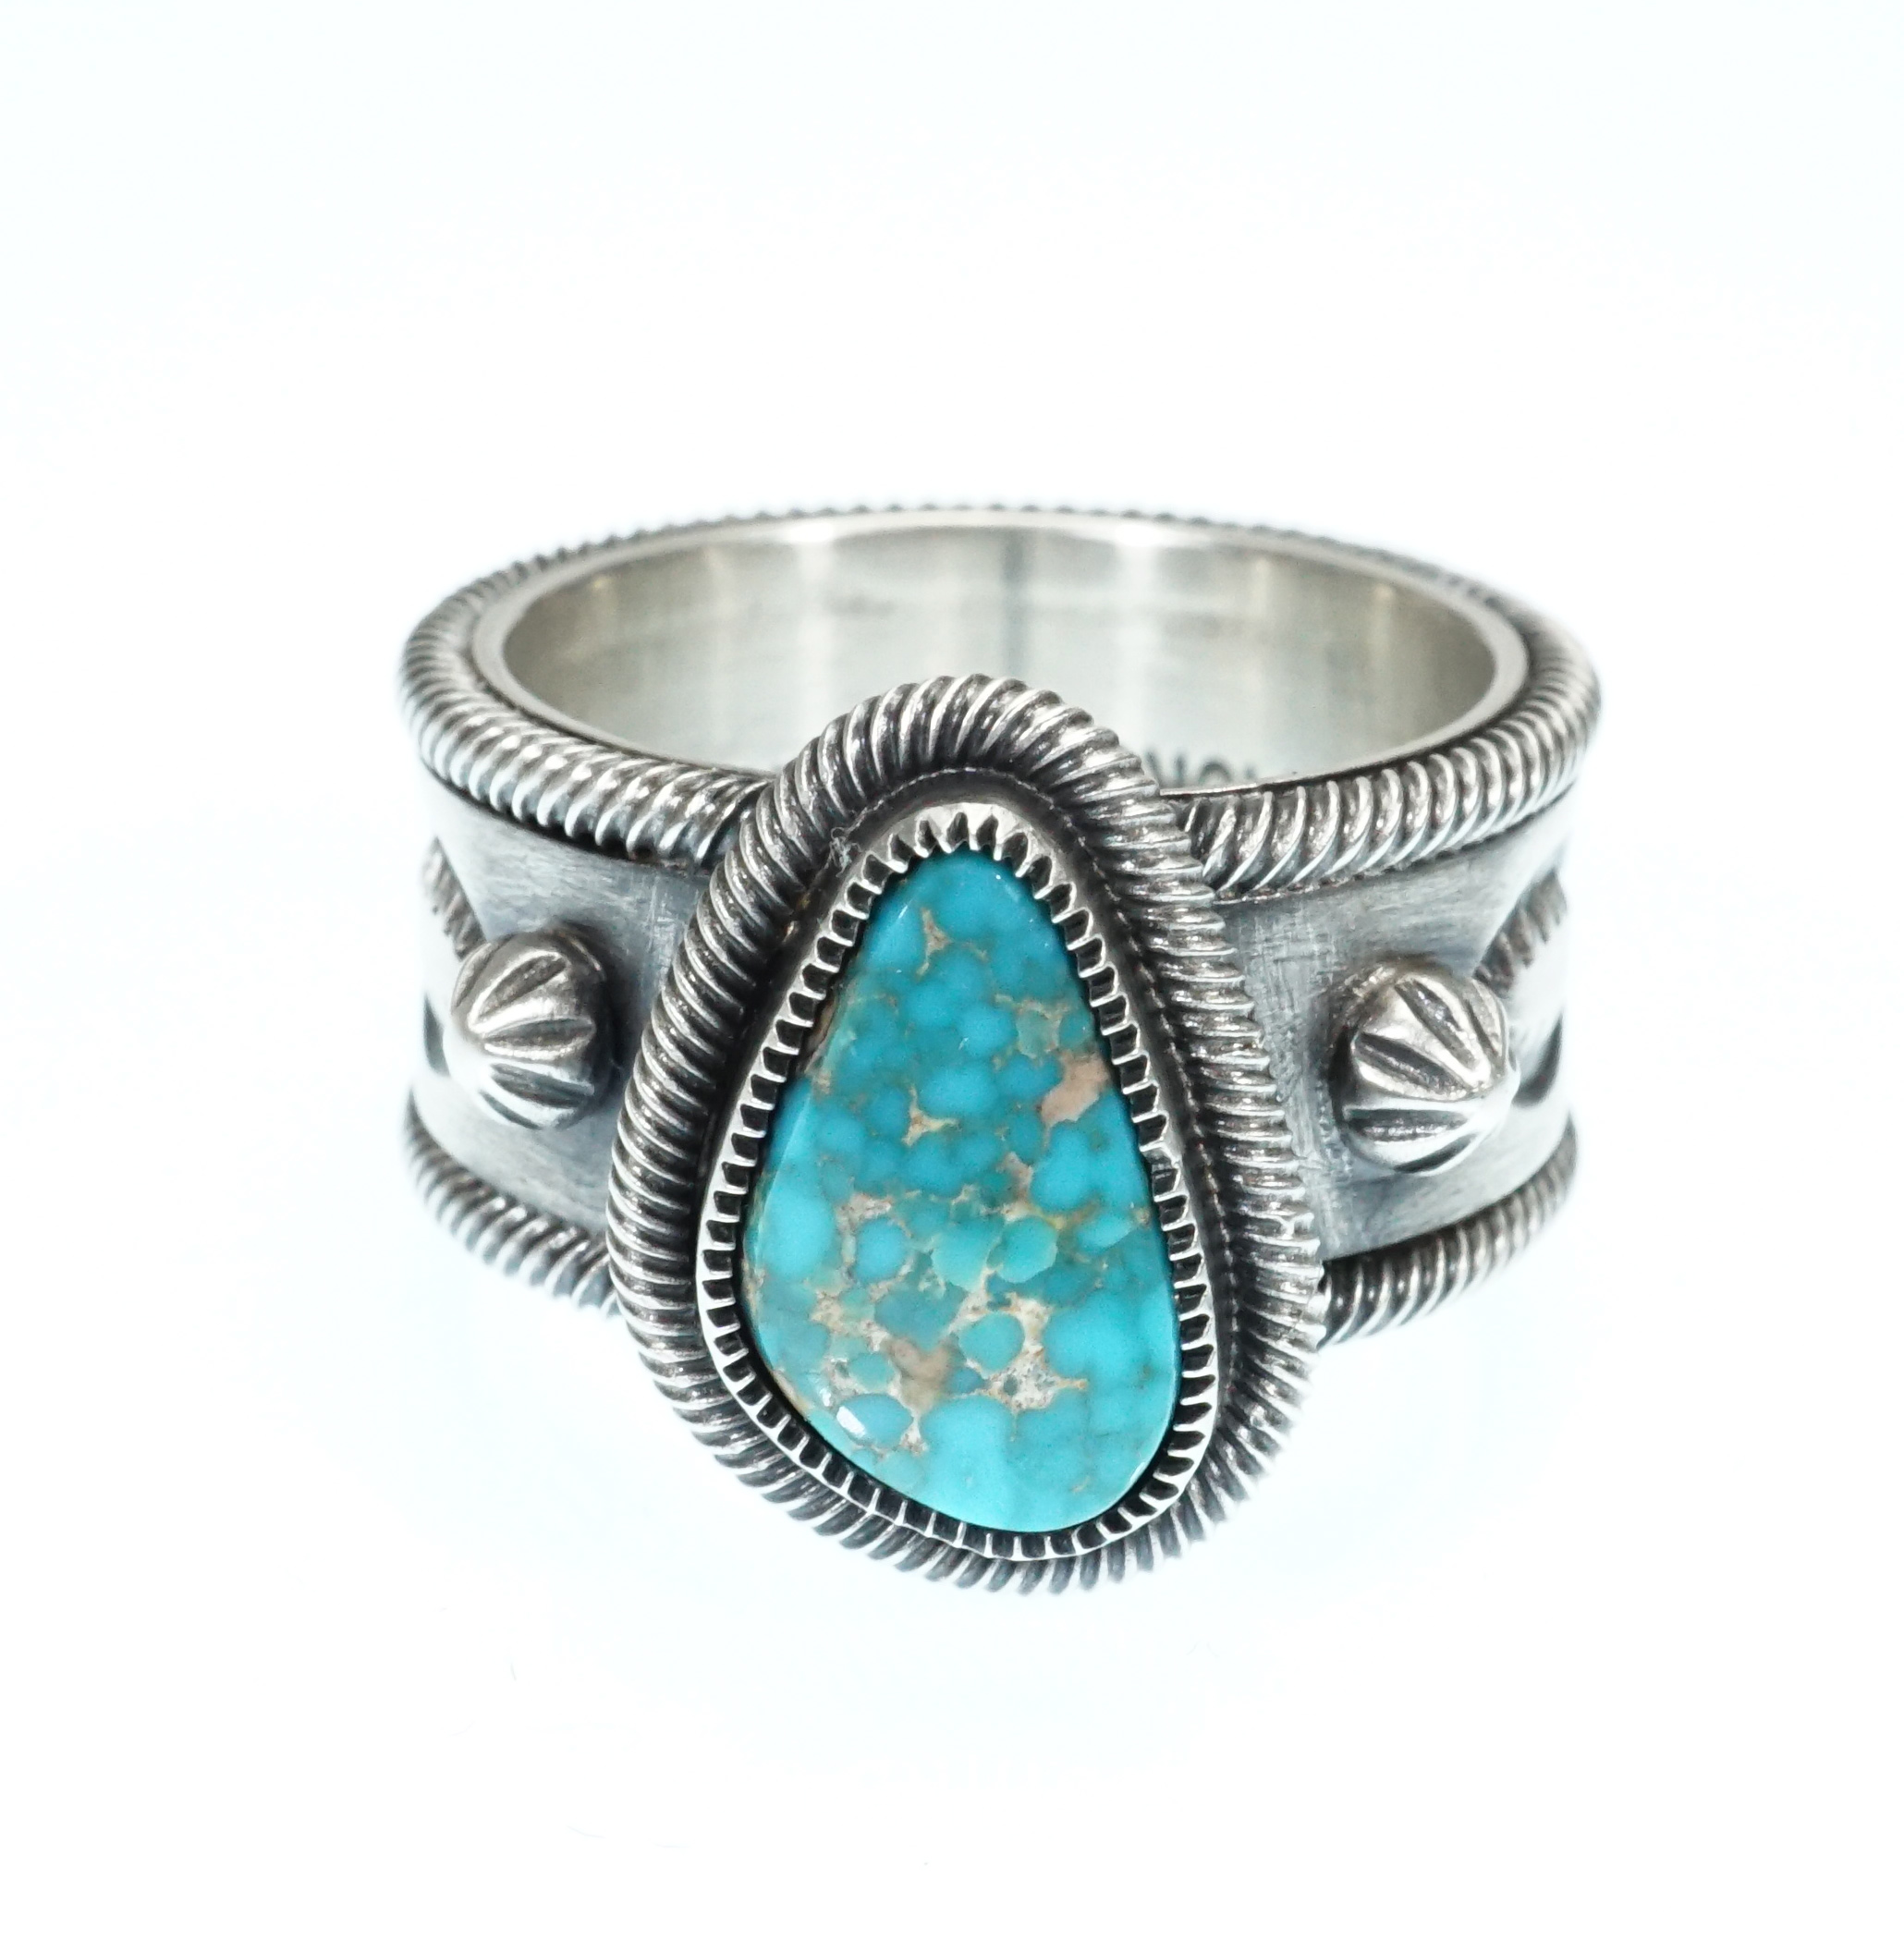 Navajo Artist Jacob D. Morgan Sterling Silver Ring with Candelaria Turquoise